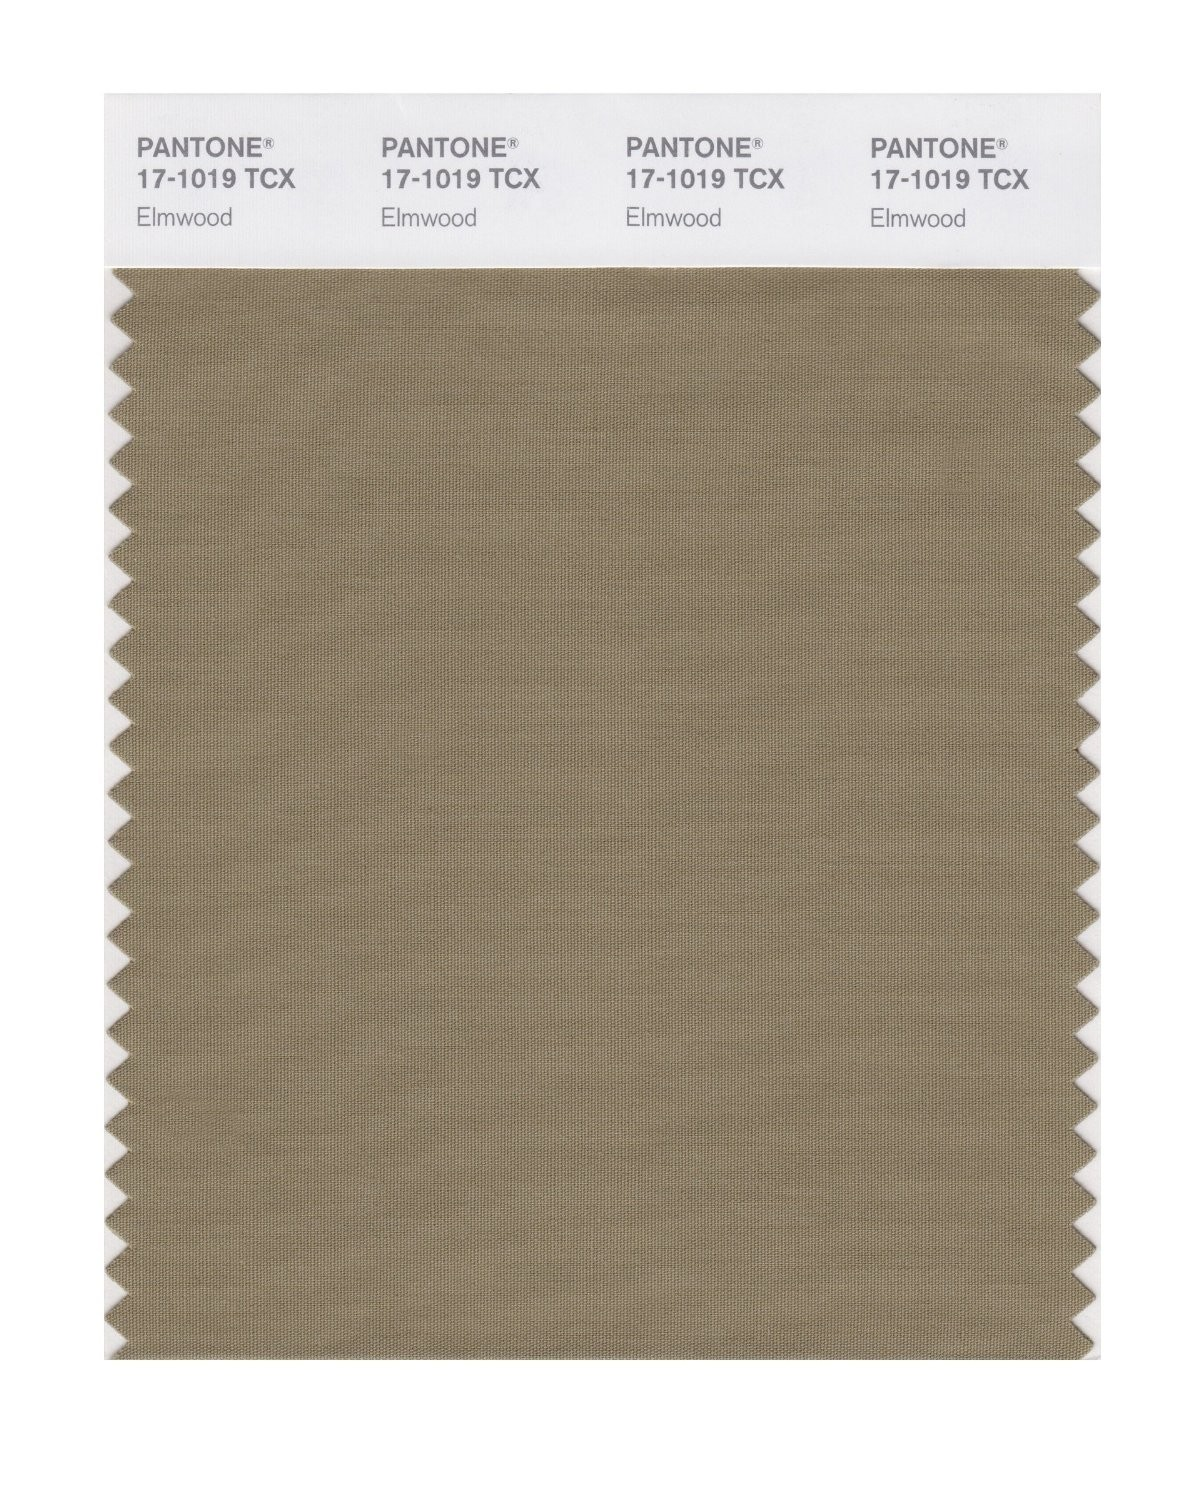 Pantone 17-1019 TCX Swatch Card Elmwood